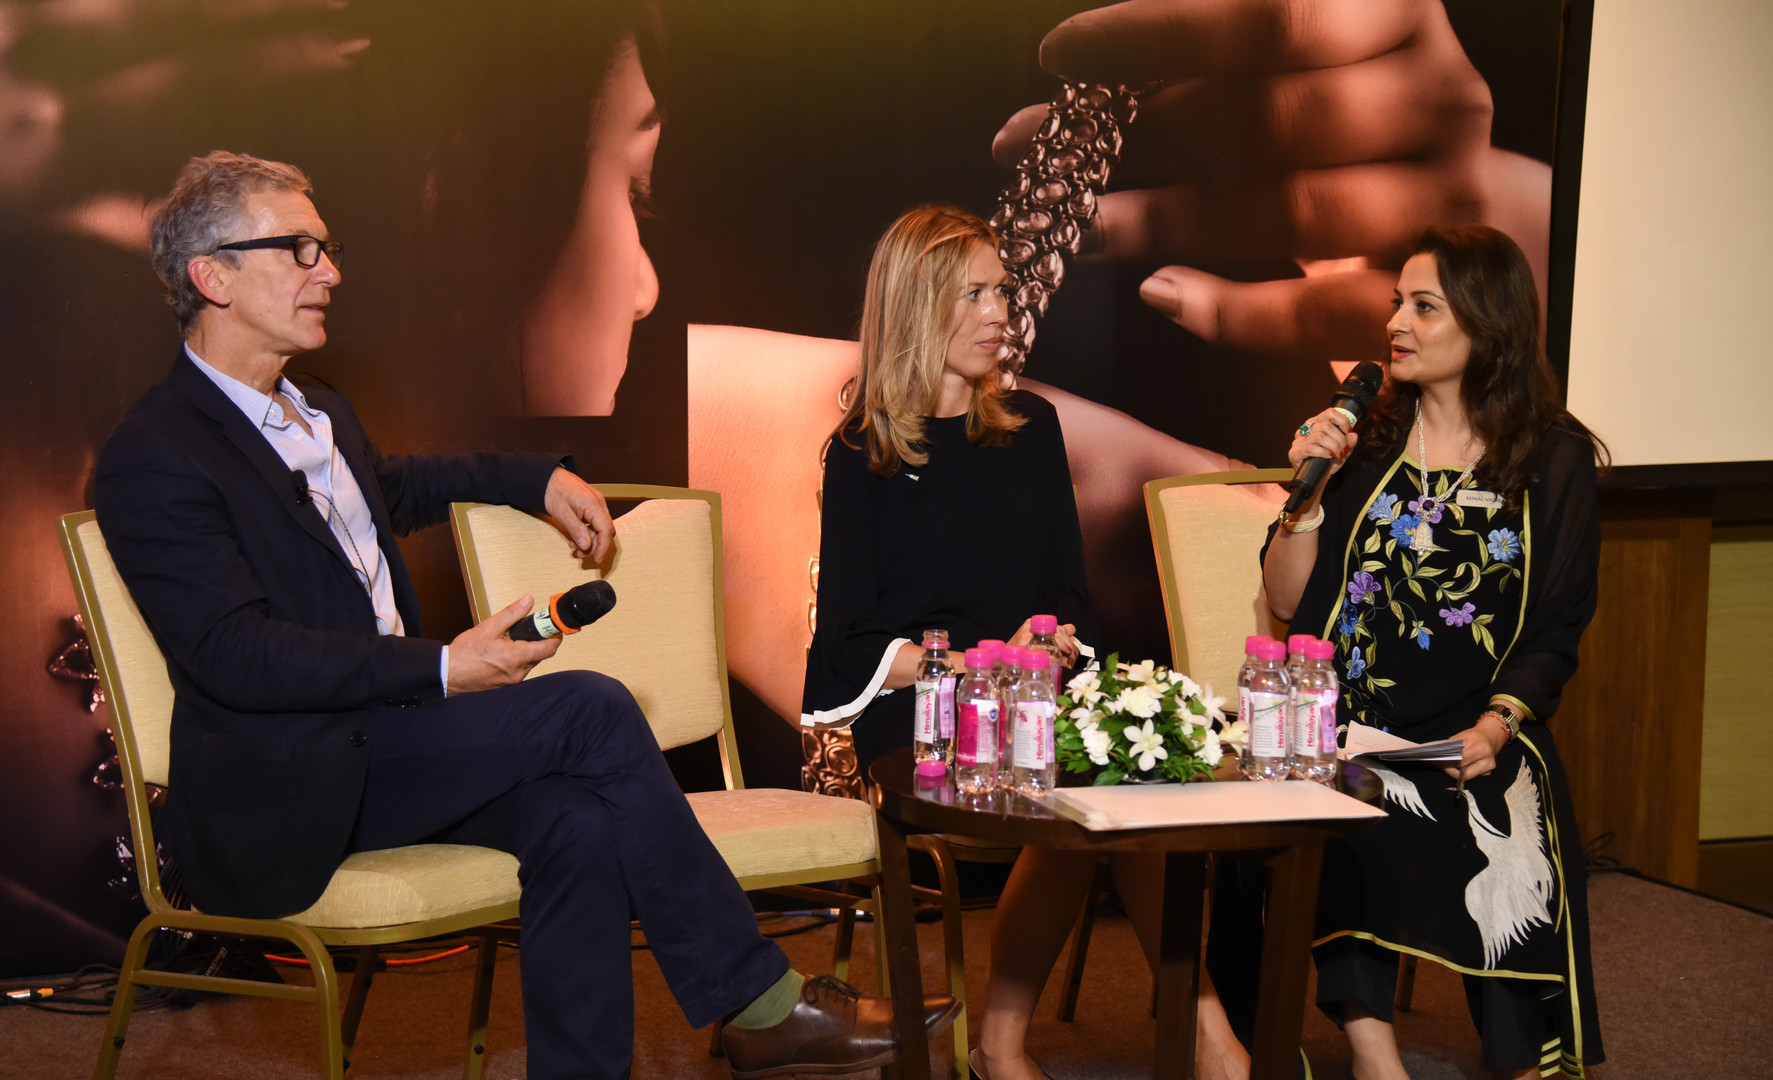 Francesca Cartier-Brickell, great-granddaughter of Jacques Cartier, and John Zubrzycki, Australian writer, journalist and researcher, in a Q&A session moderated by Minal Vazirani, co-founder and President of Saffronart.